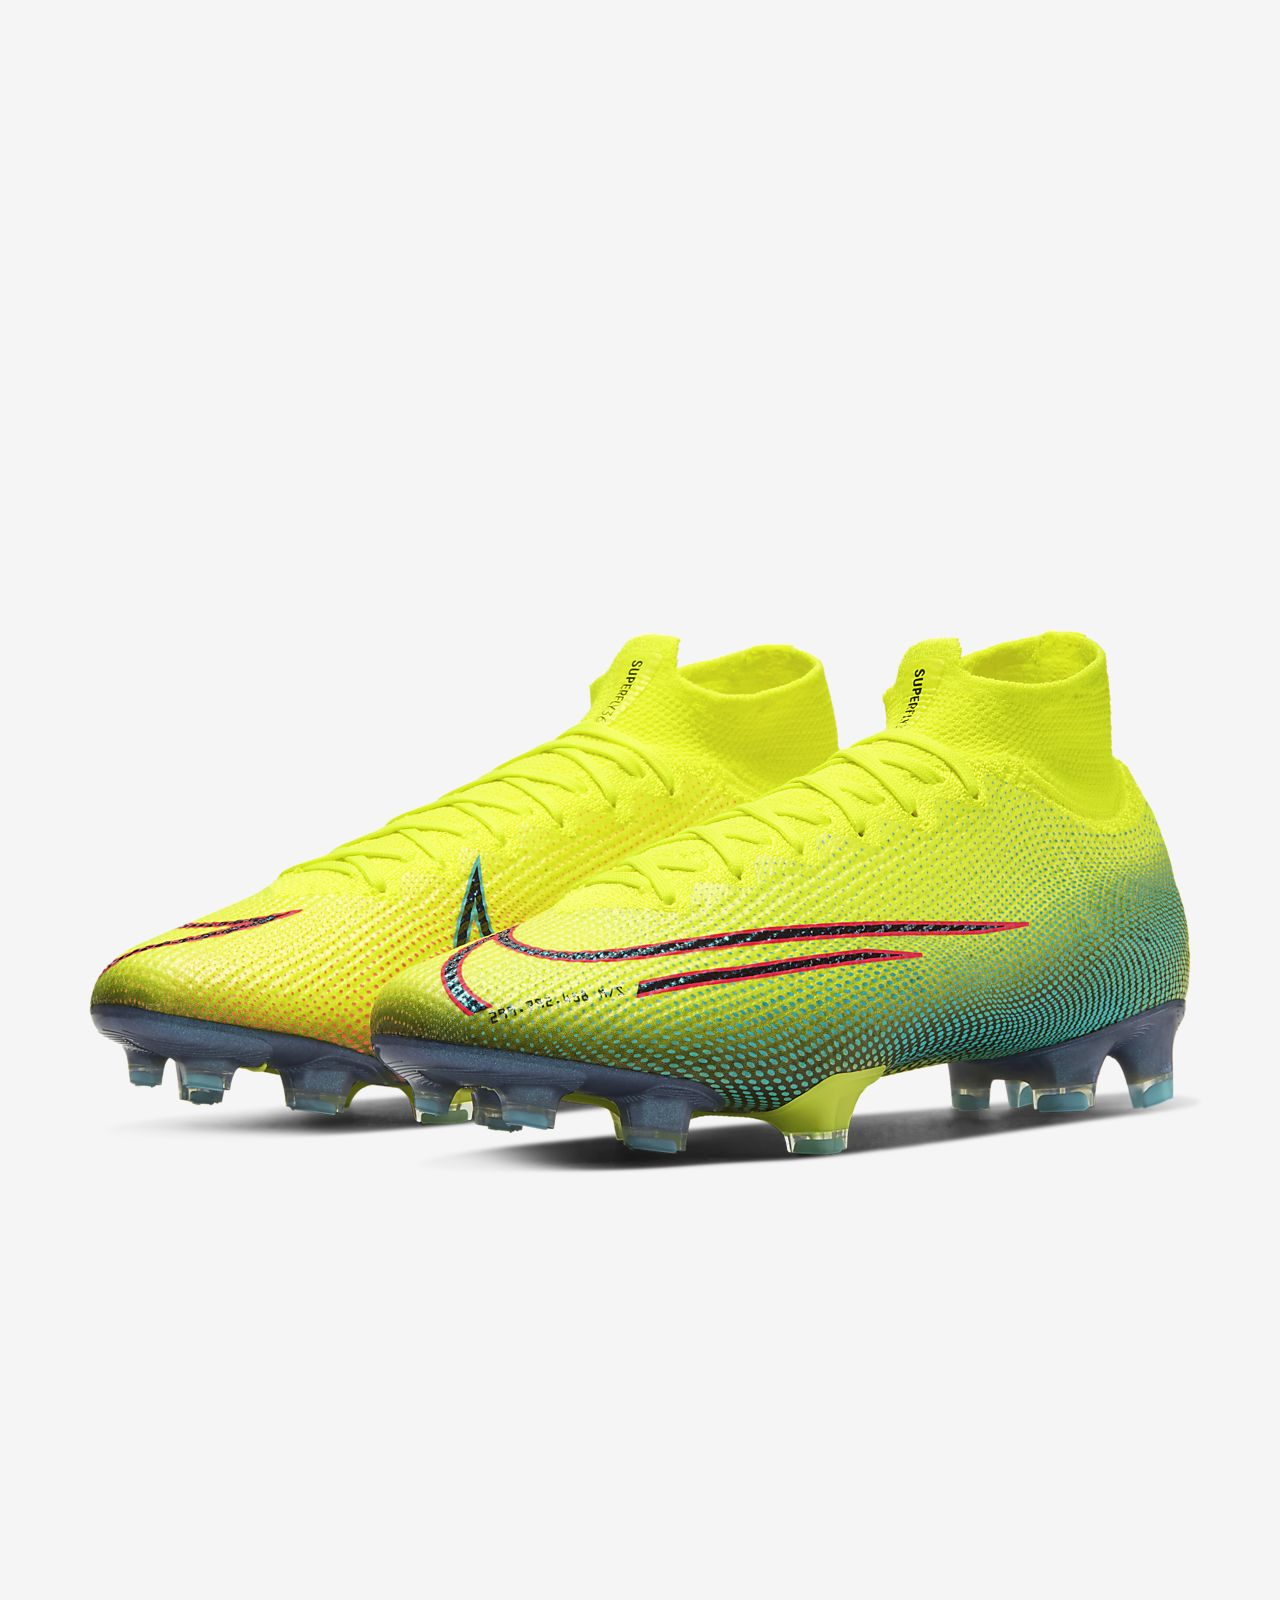 Customized these Nike Mercurial Superfly's aighttt | Nike